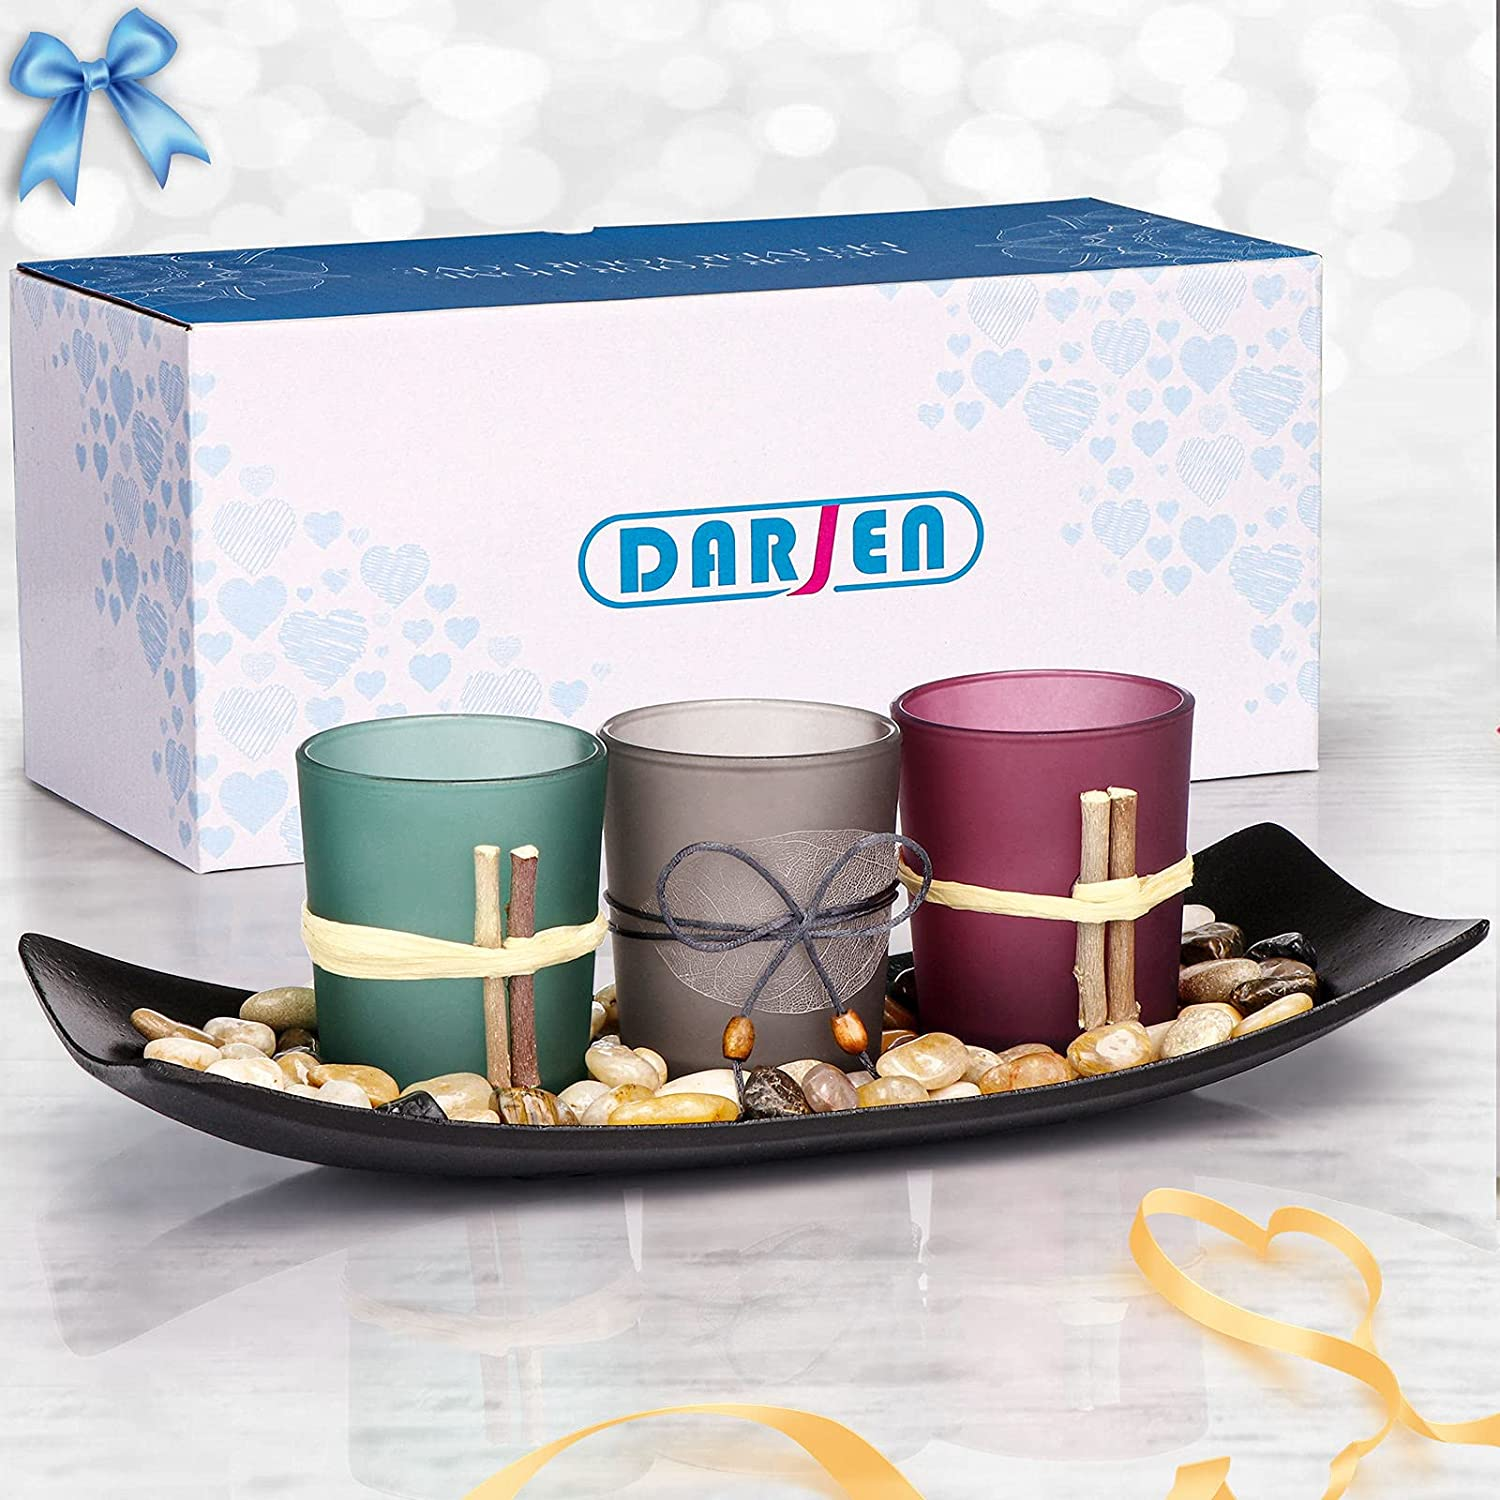 DARJEN Candle Holders Tray and Rocks,Candle Holders Gift Set for Mom Women,Candlescape Centerpiece Set of 3 Tea Light,Home Decor for Coffee Table,Living Room,Birthday,Valentines Day,Christmas,Gift Box